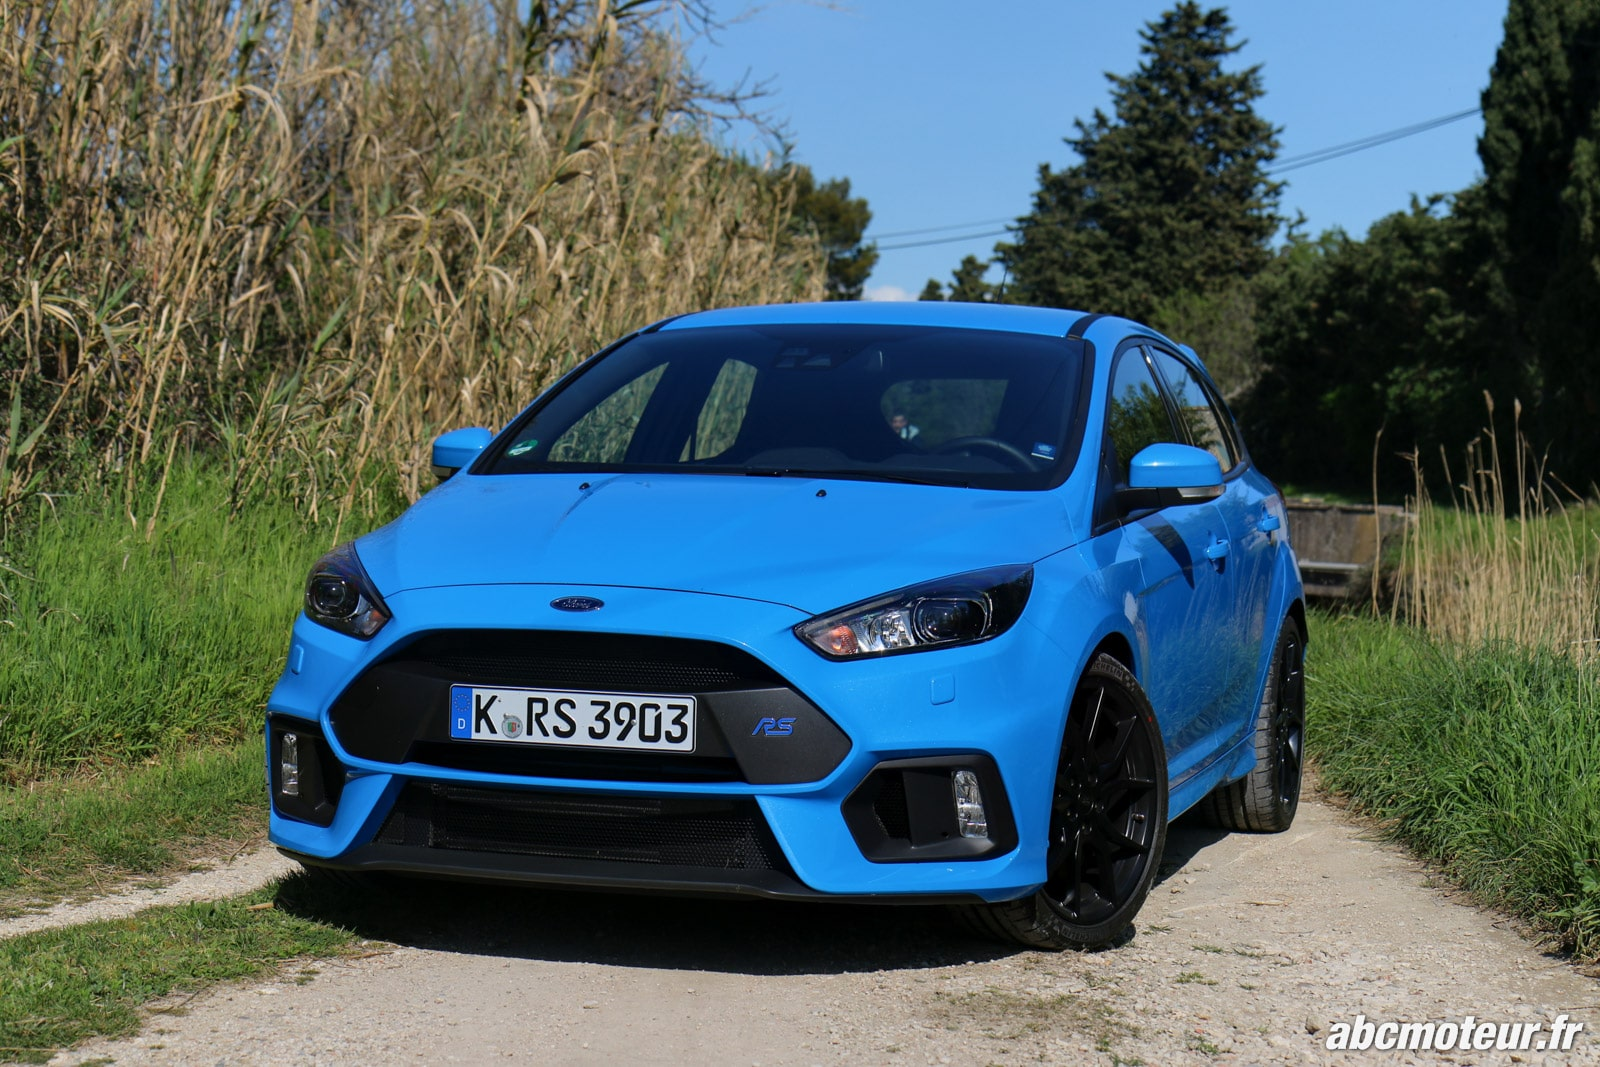 essai ford focus rs la plus fun des compactes sportives. Black Bedroom Furniture Sets. Home Design Ideas